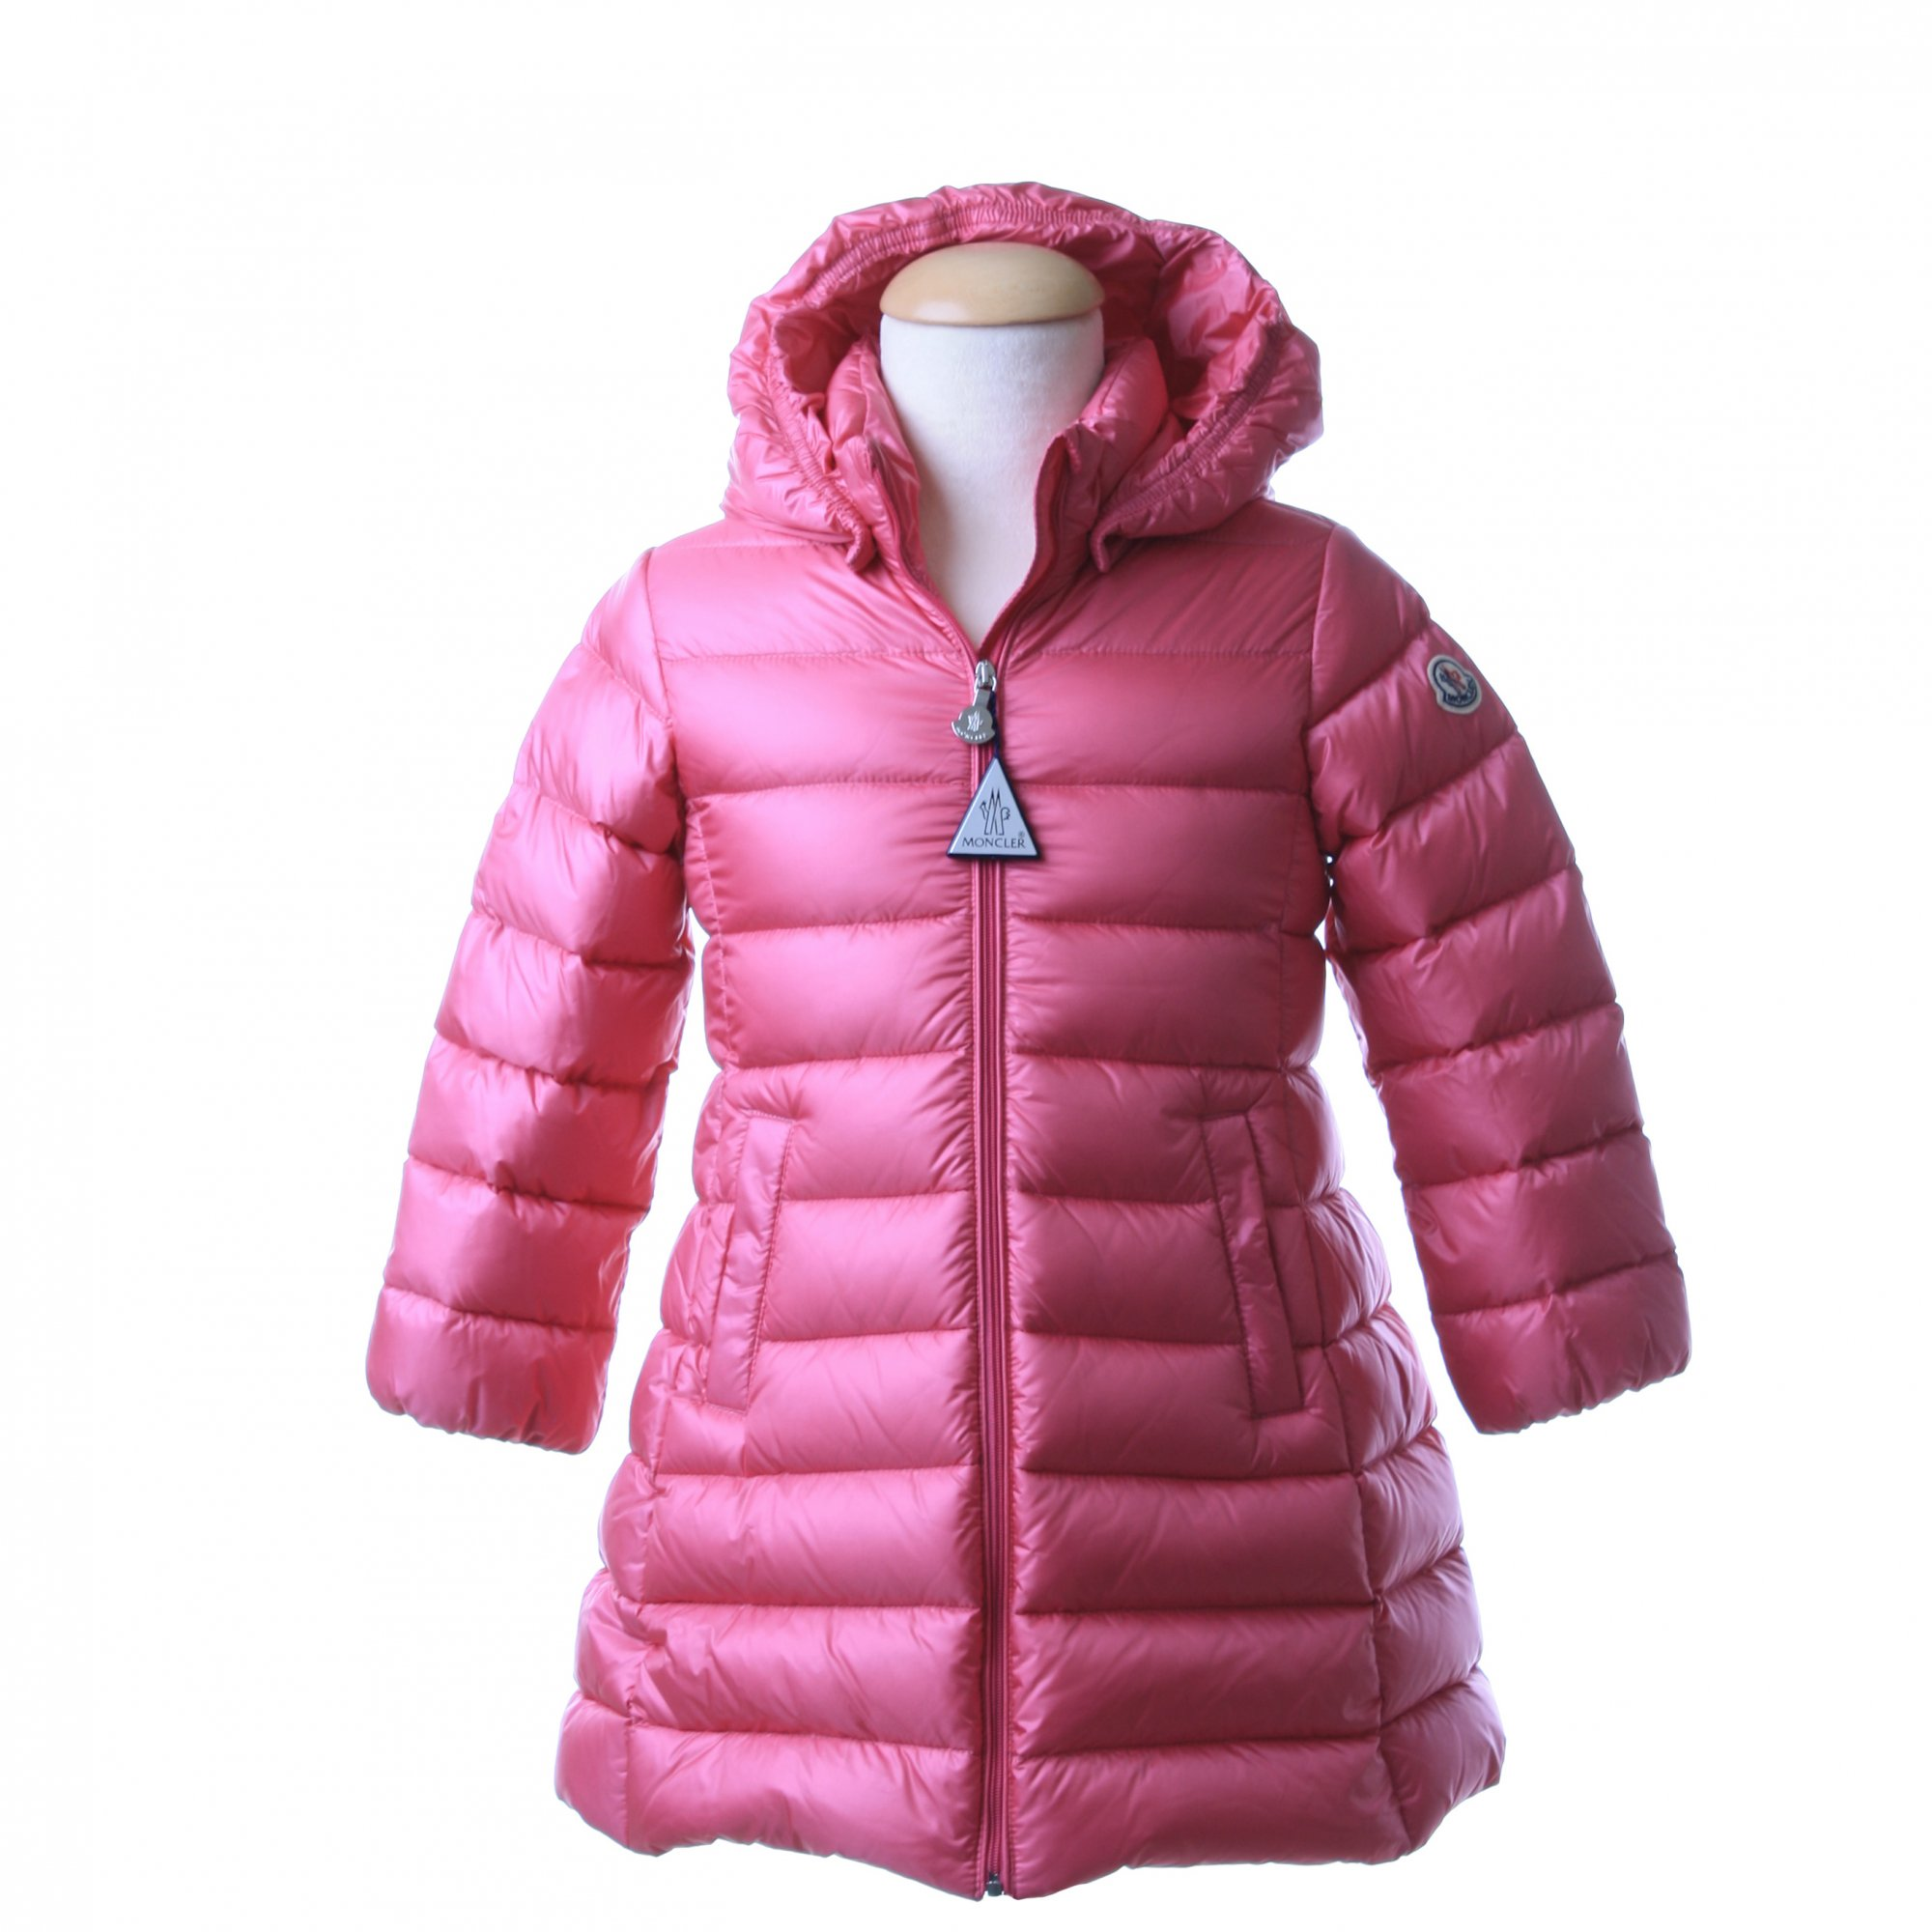 the latest 74a07 1a1d7 giubbino bimba moncler